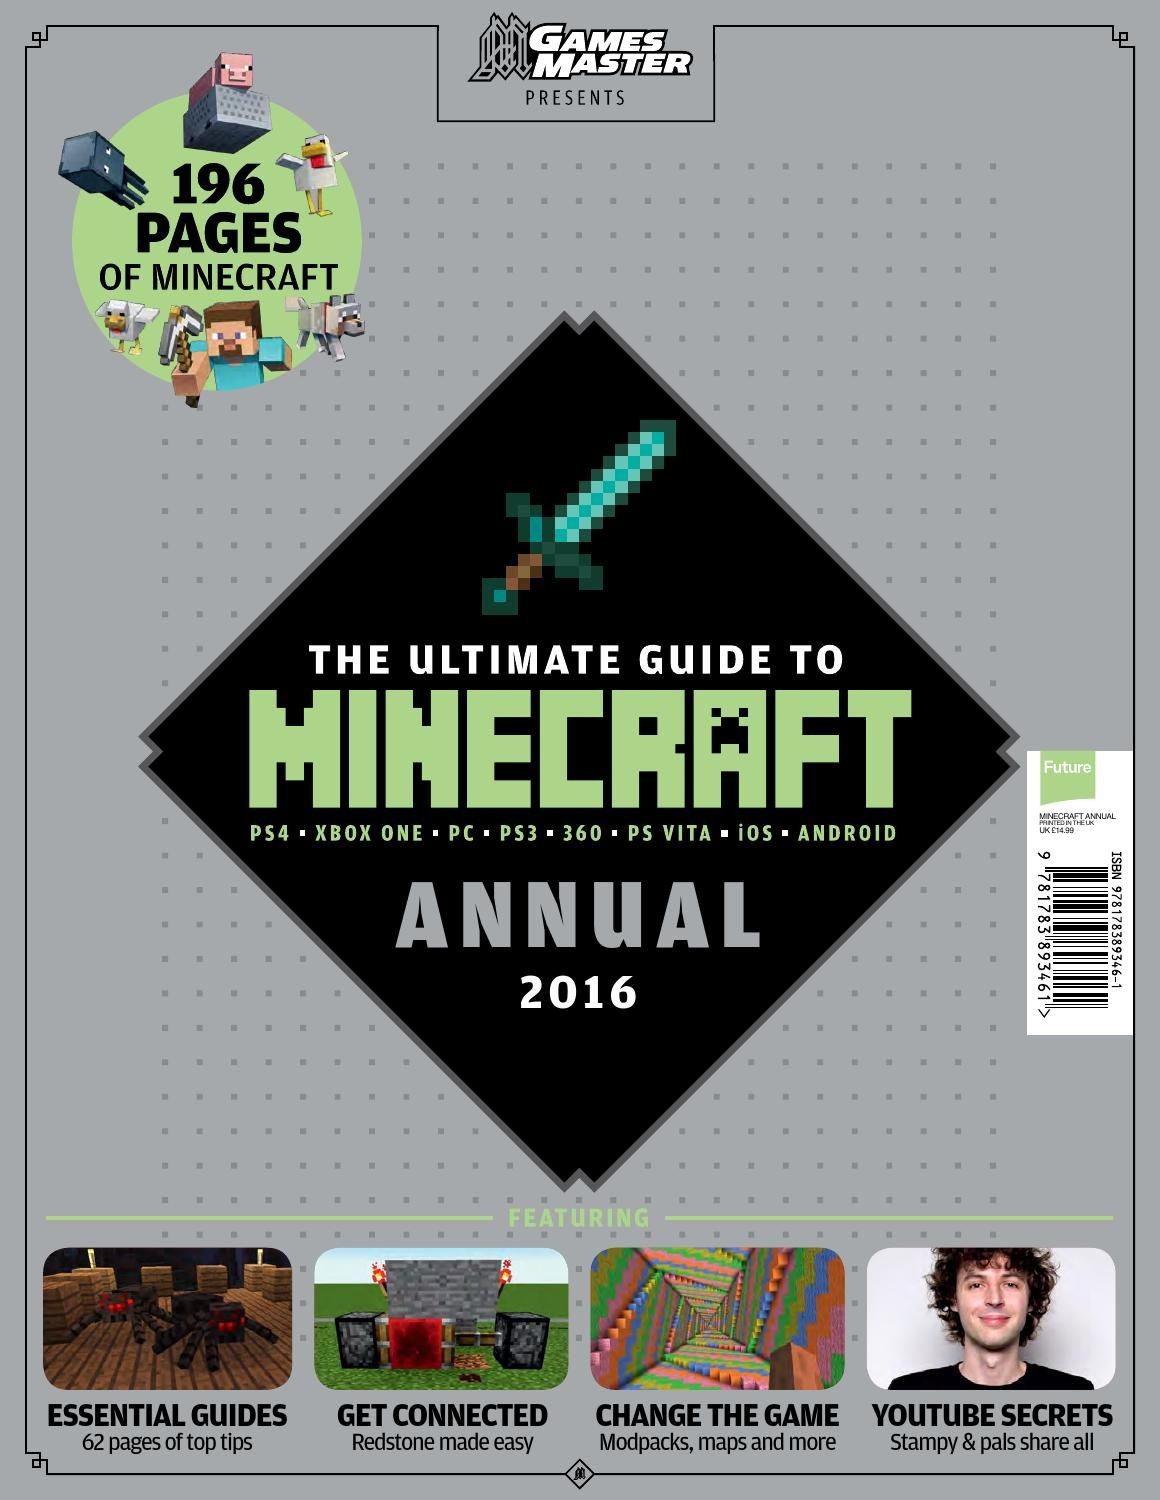 GamesMaster Presents: The Ultimate Guide to Minecraft Annual 2016